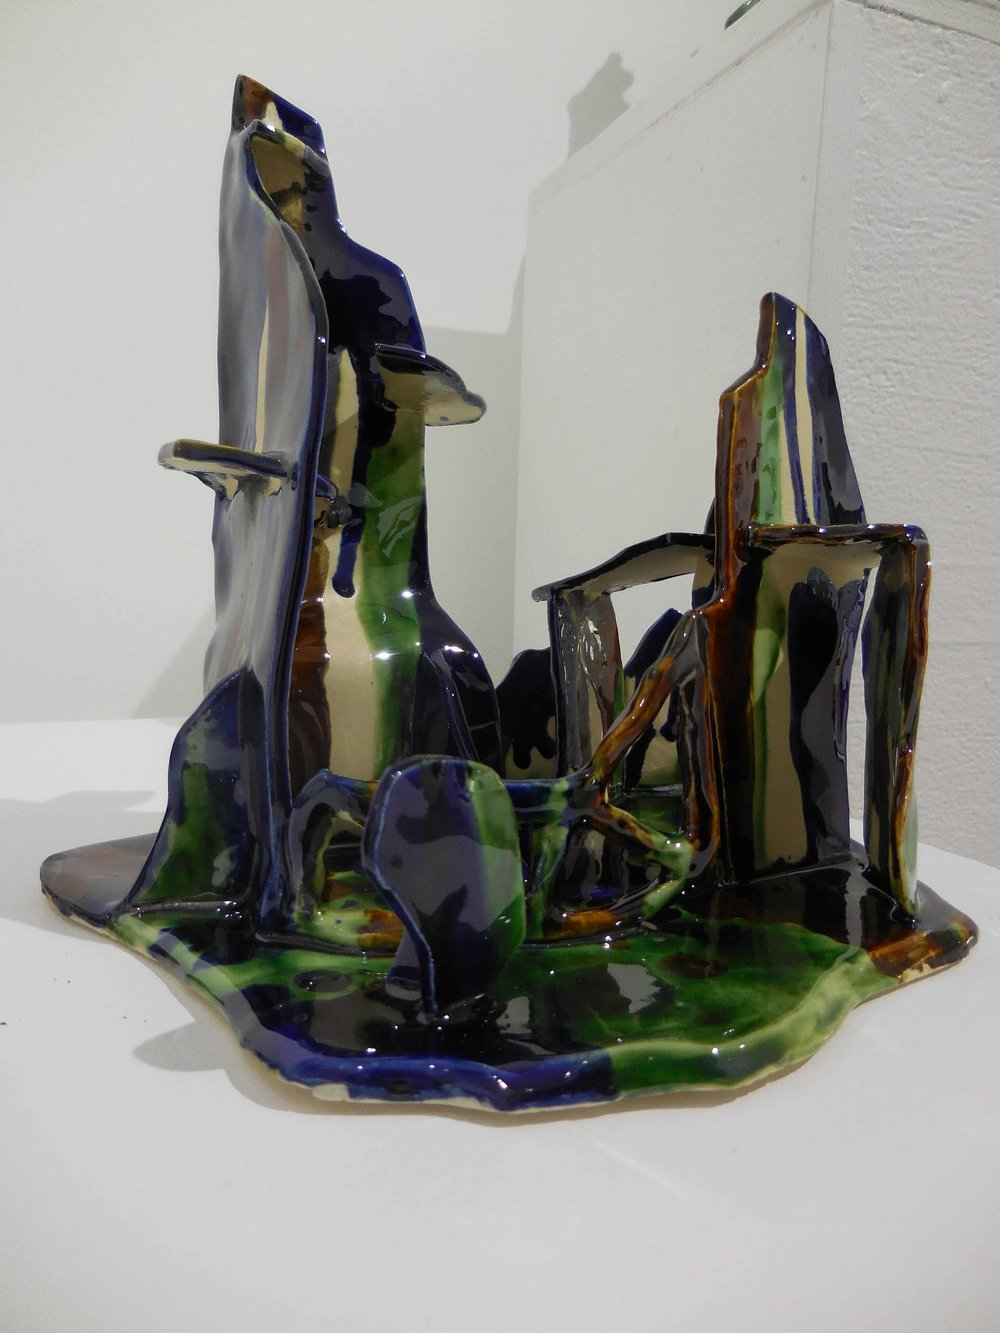 Lost village. 2017.  Earthenware, glazed ceramic. 20 x 18 x 21 cm $700